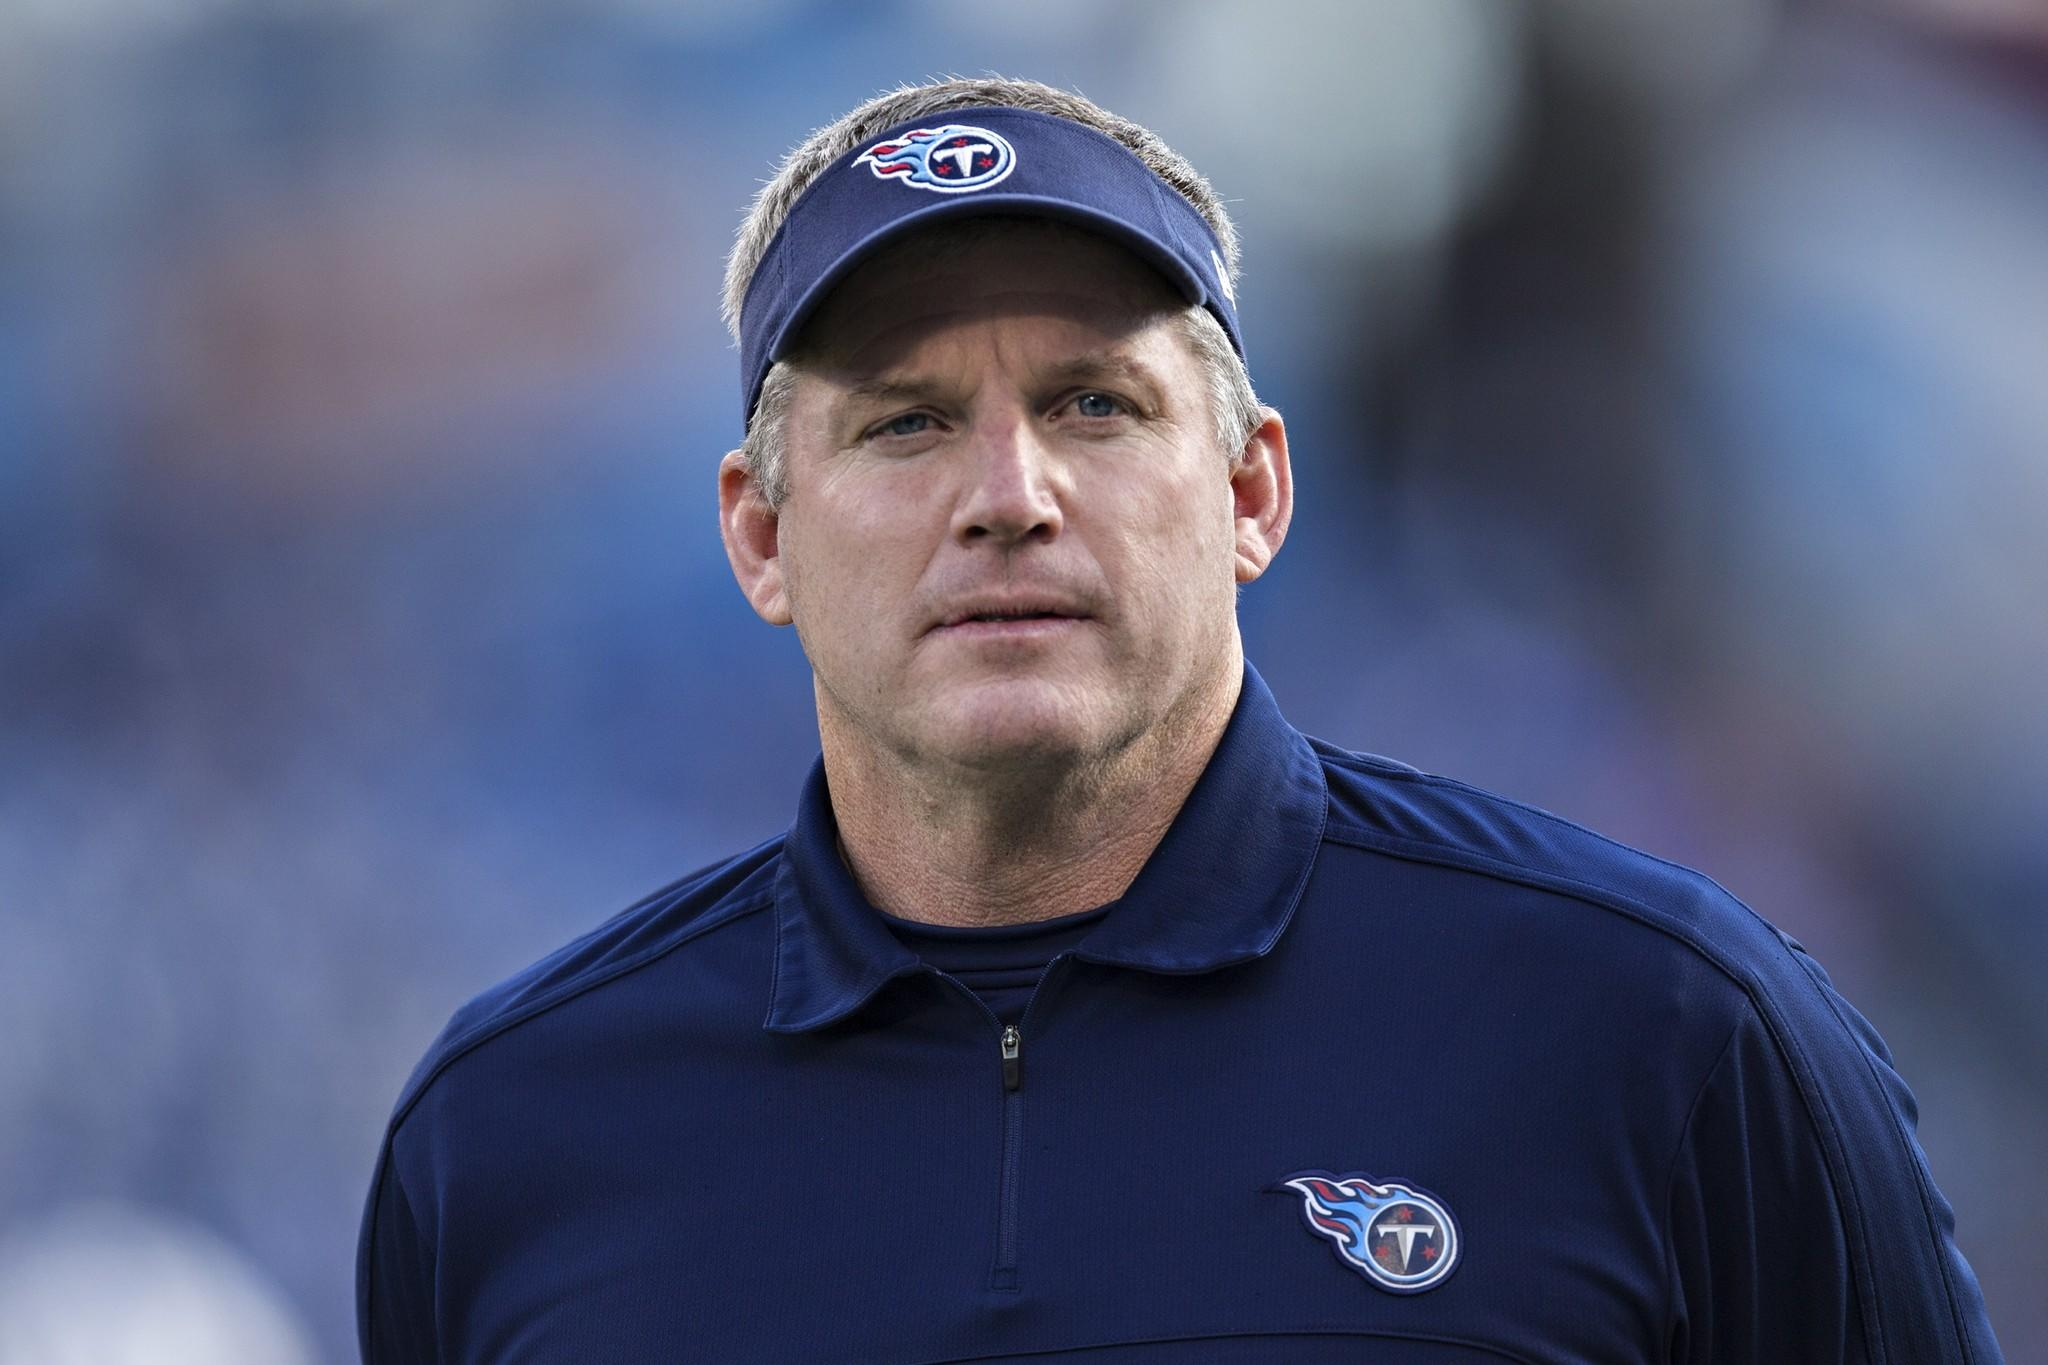 Coach Mike Munchak of the Tennessee Titans walks off the field after a game against the Houston Texans at LP Field on December 29, 2013.